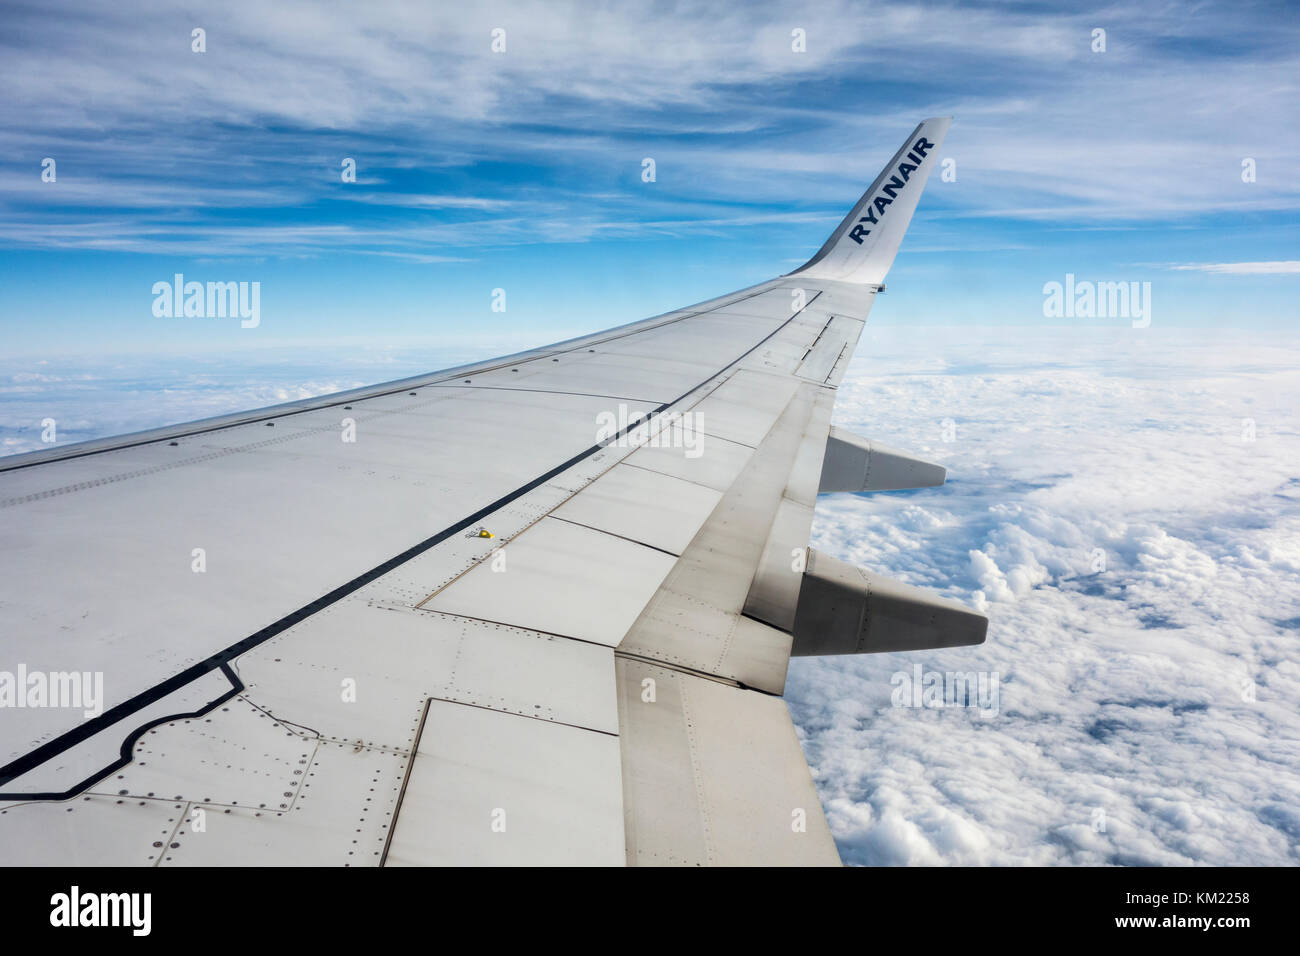 View from a plane window of a wing and Ryanair logo - Stock Image